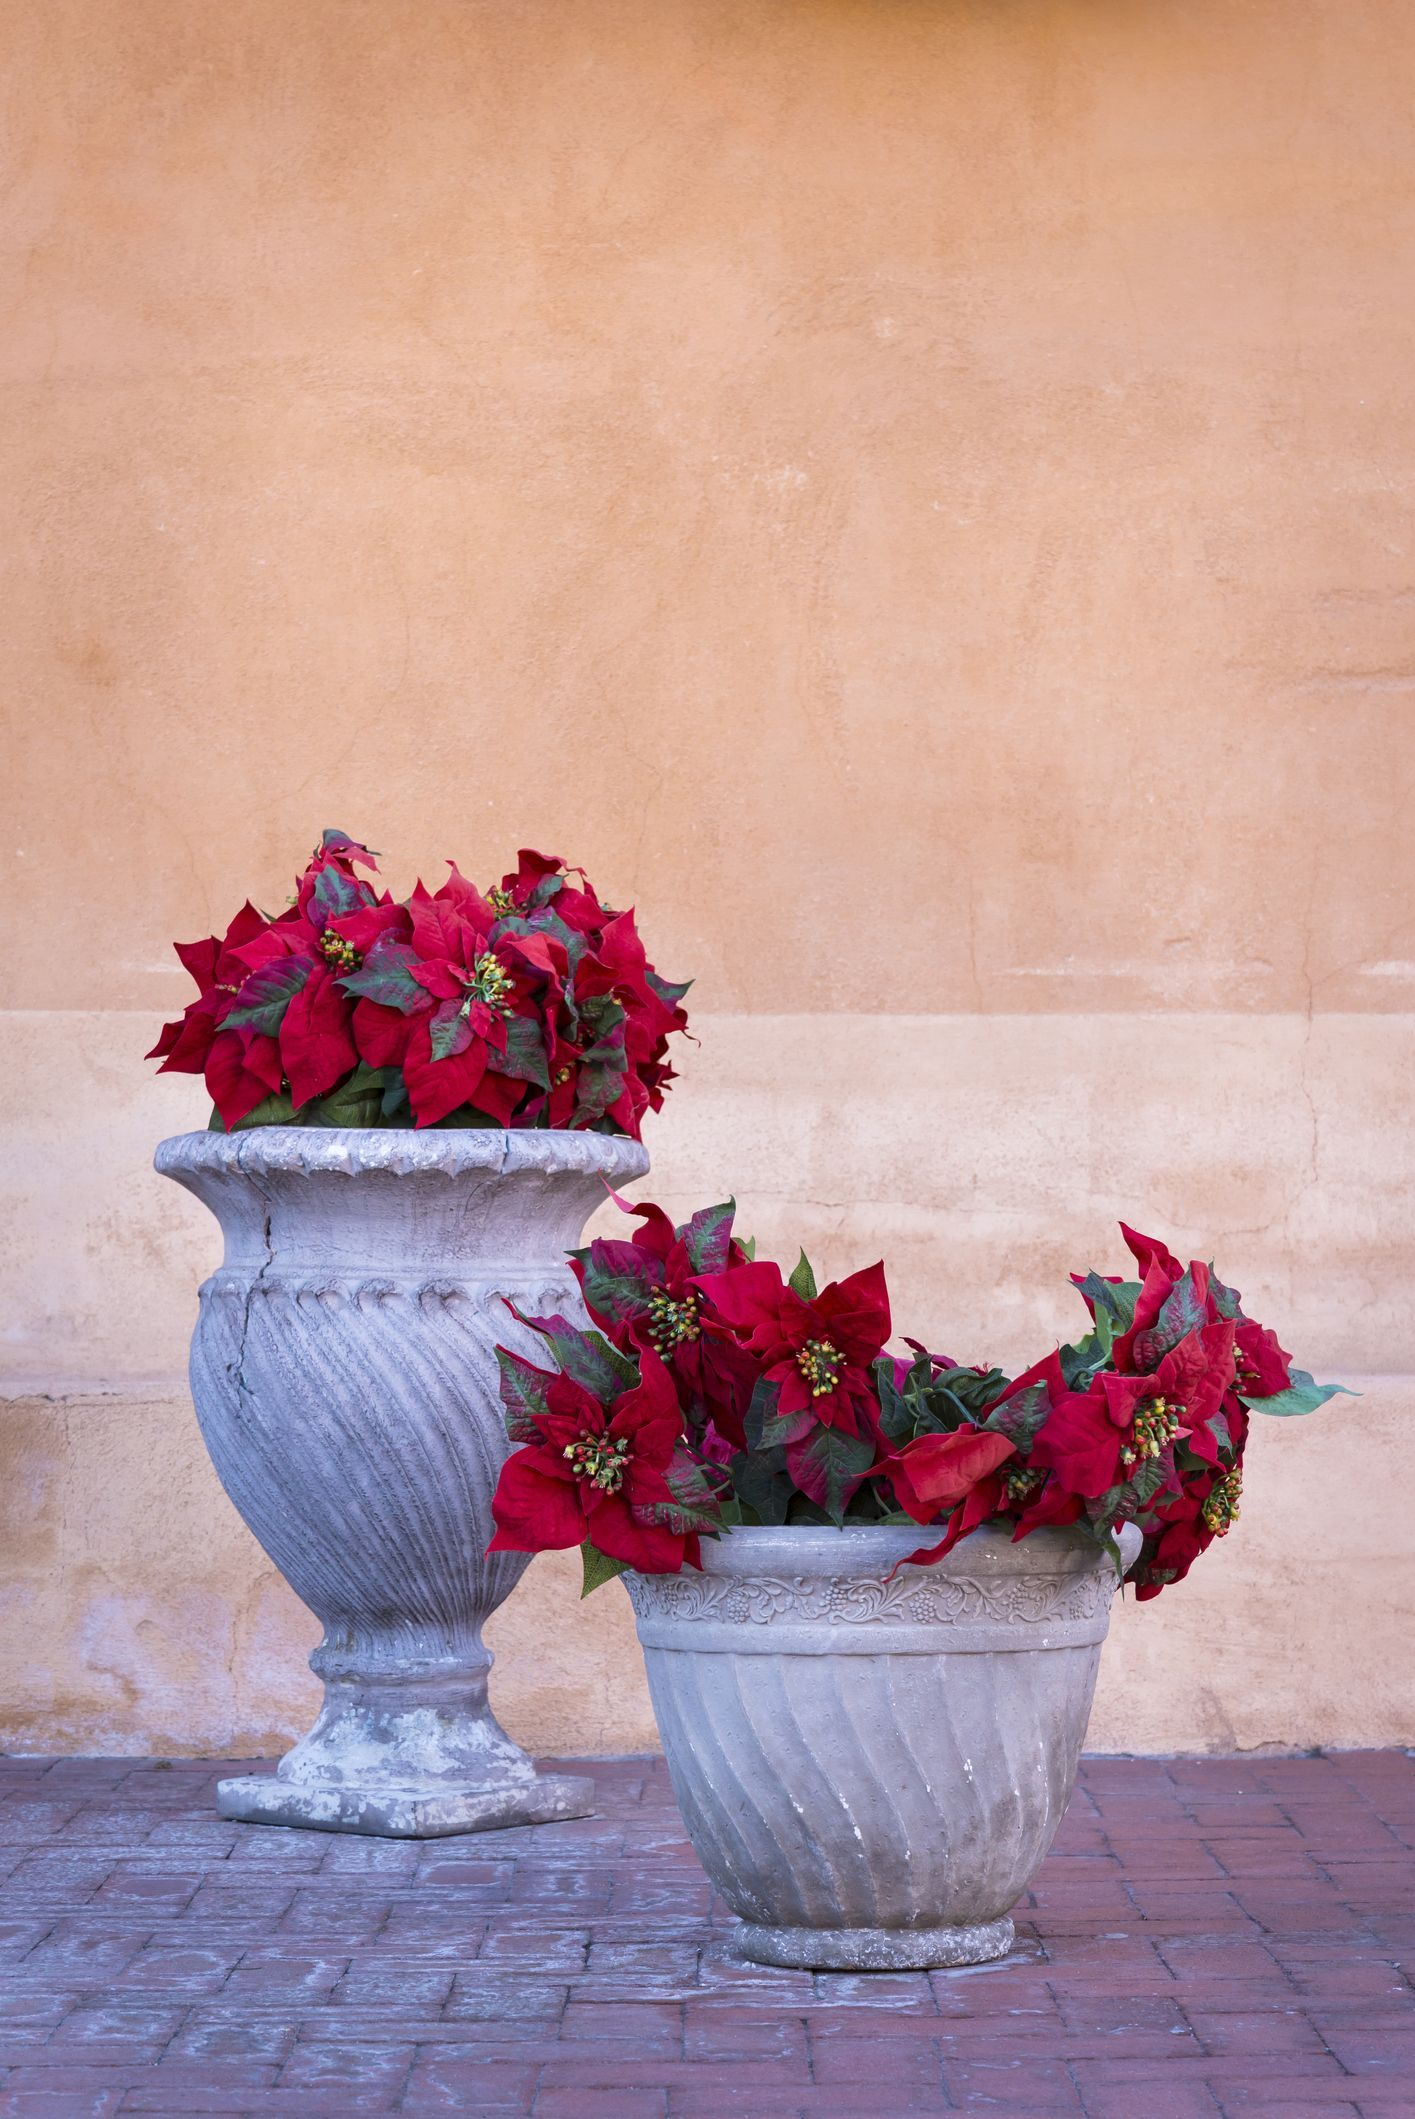 How to Grow Poinsettias So They'll Re-Bloom Next Christmas | Poinsettia plant, Planting flowers ...